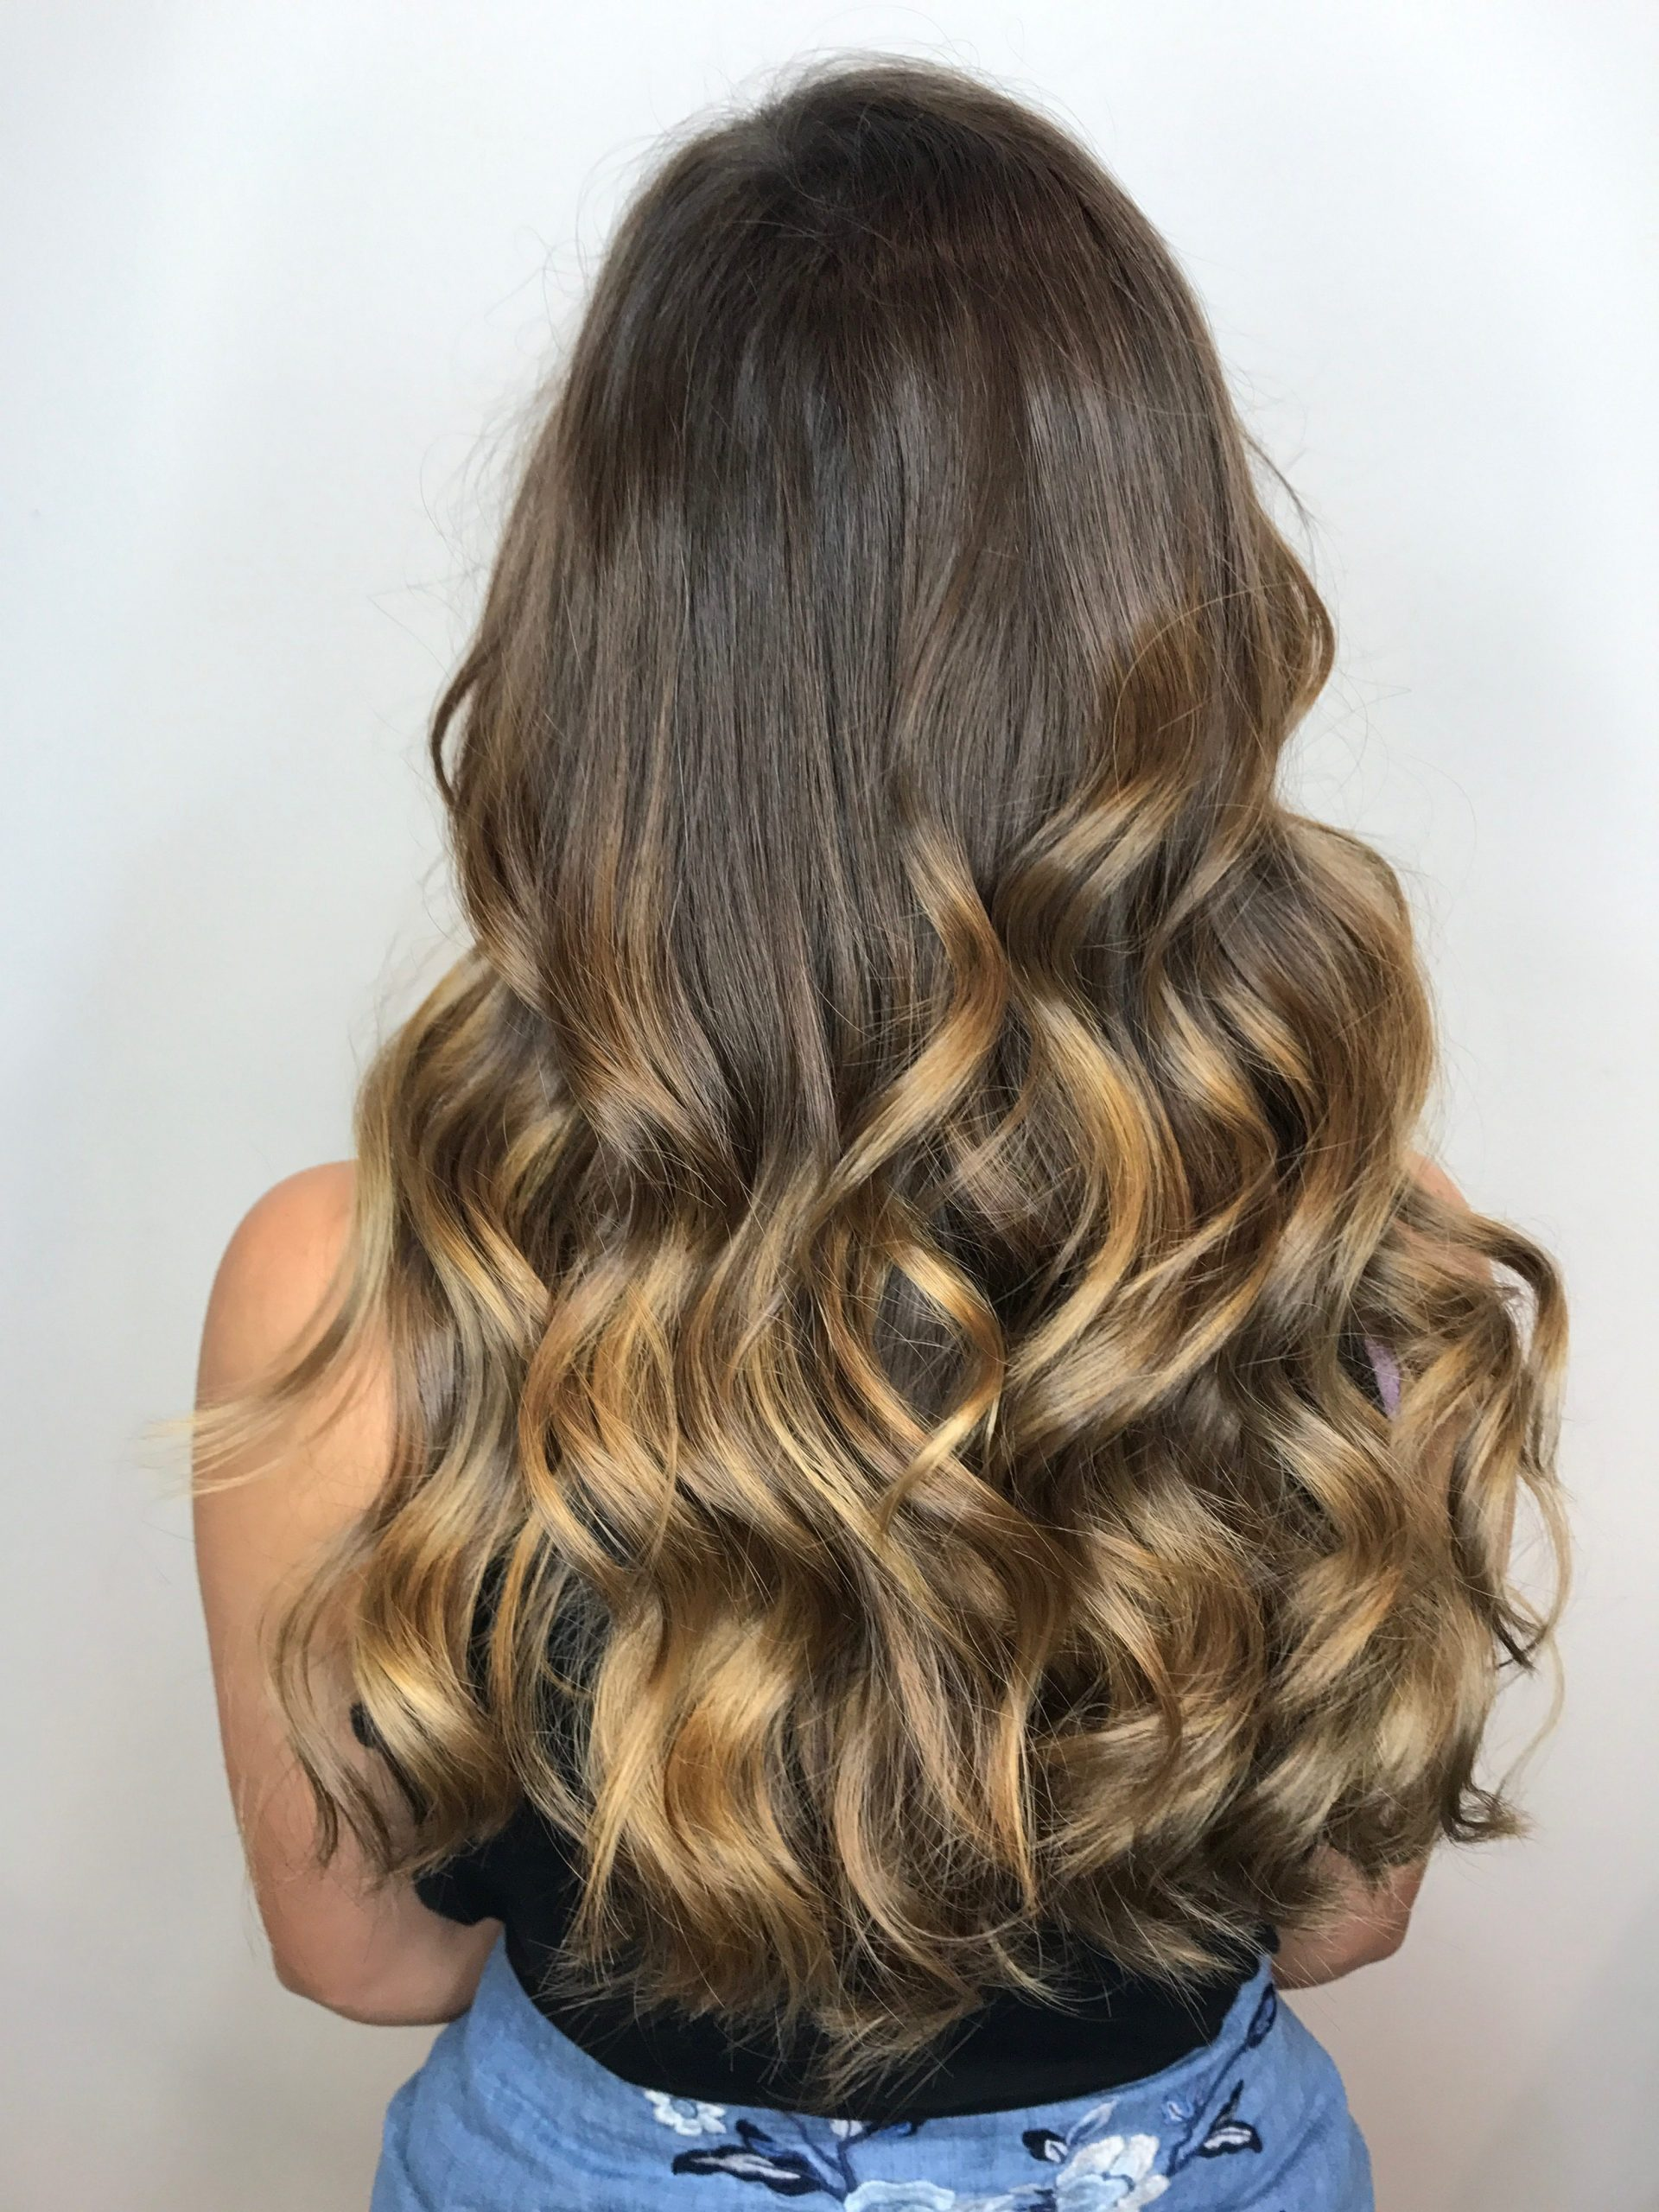 Hair Salon In Baton Rouge Cuts Color Extensions Microblading More